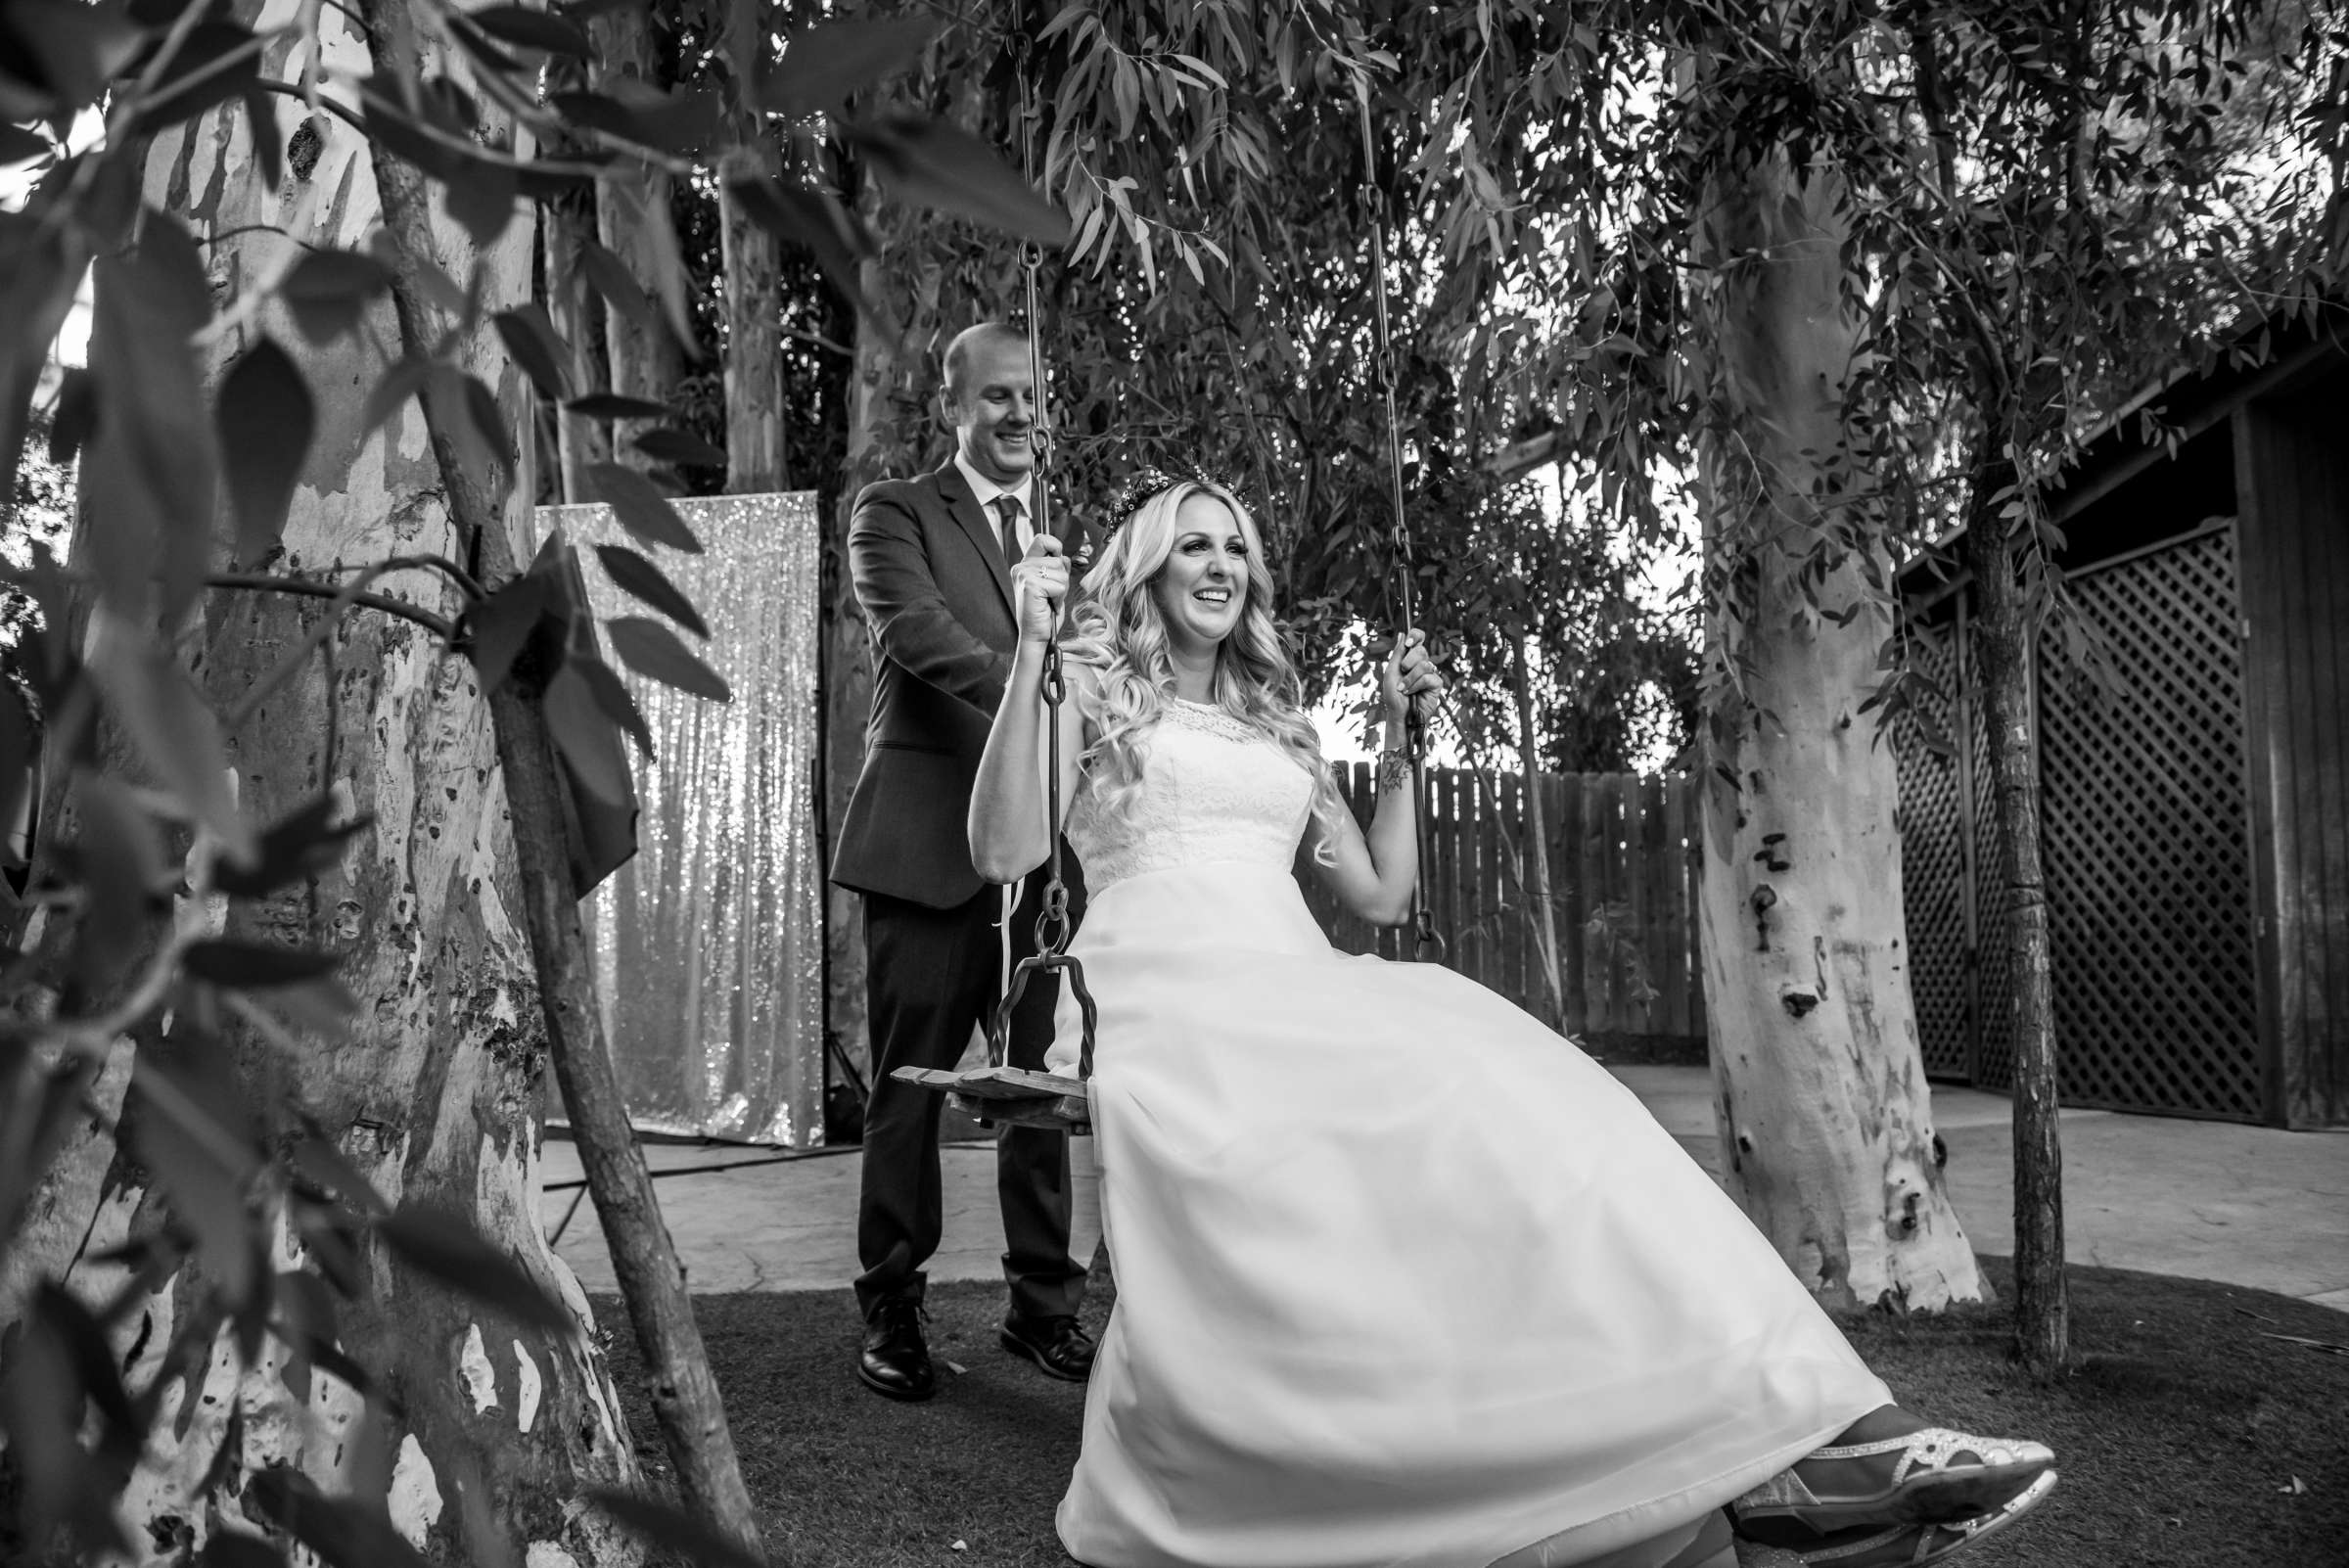 Twin Oaks House & Gardens Wedding Estate Wedding, Brittany and Sean Wedding Photo #118 by True Photography